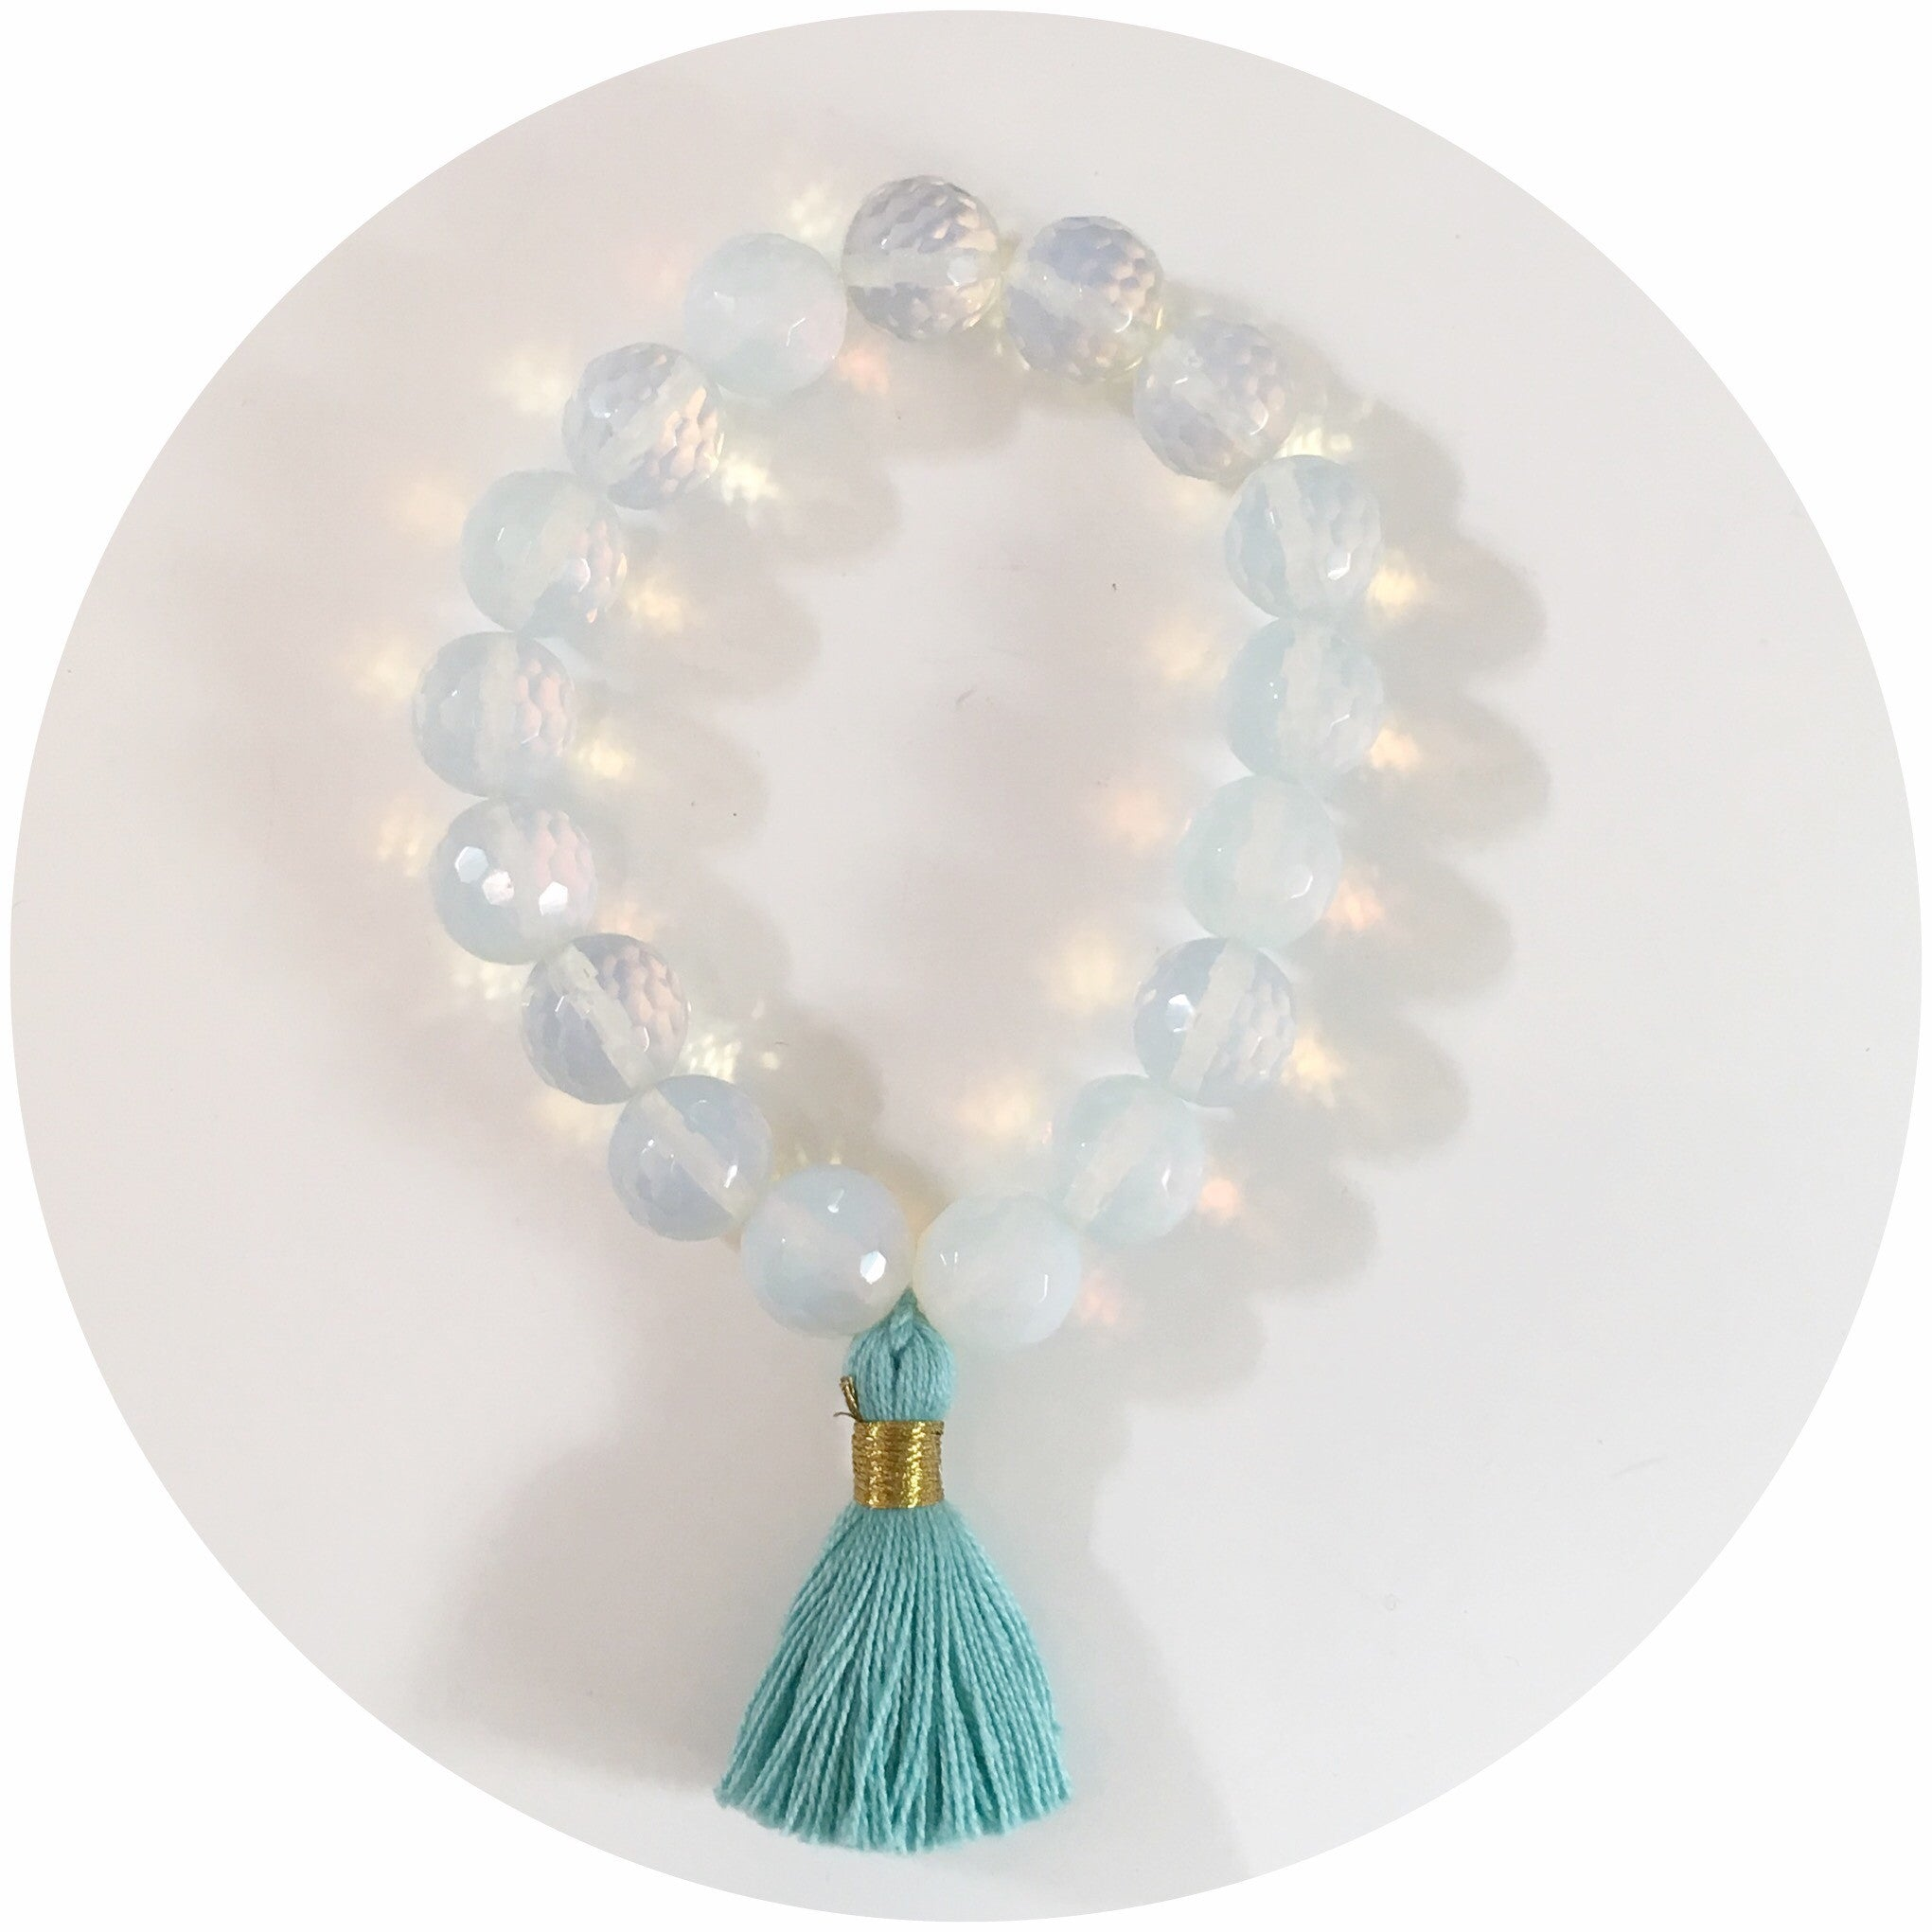 Opalite with Mint Tassel - Oriana Lamarca LLC